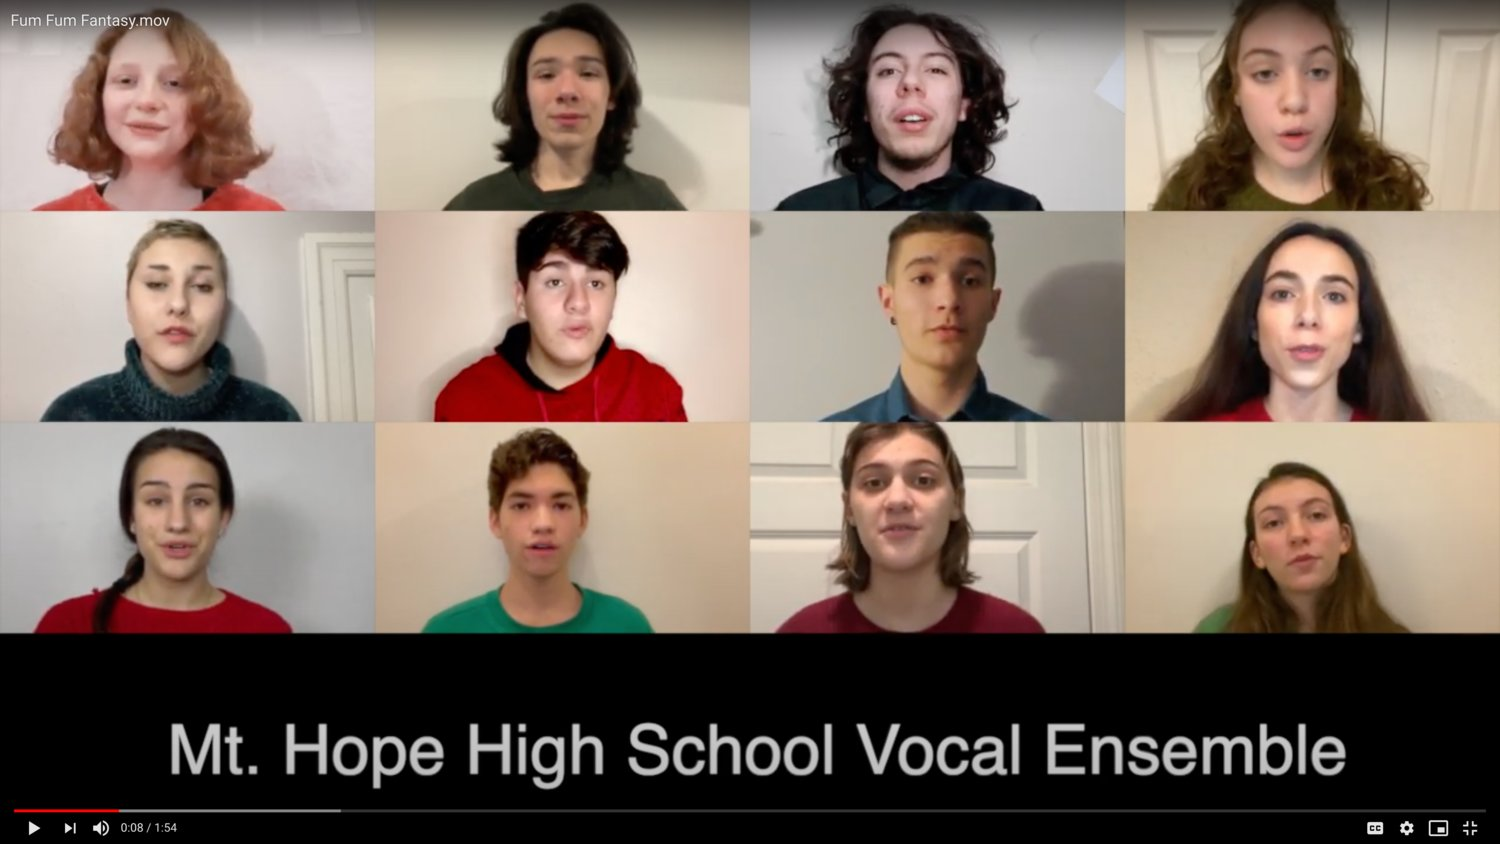 A screenshot from the show, with Mt. Hope students singing in virtual harmony.